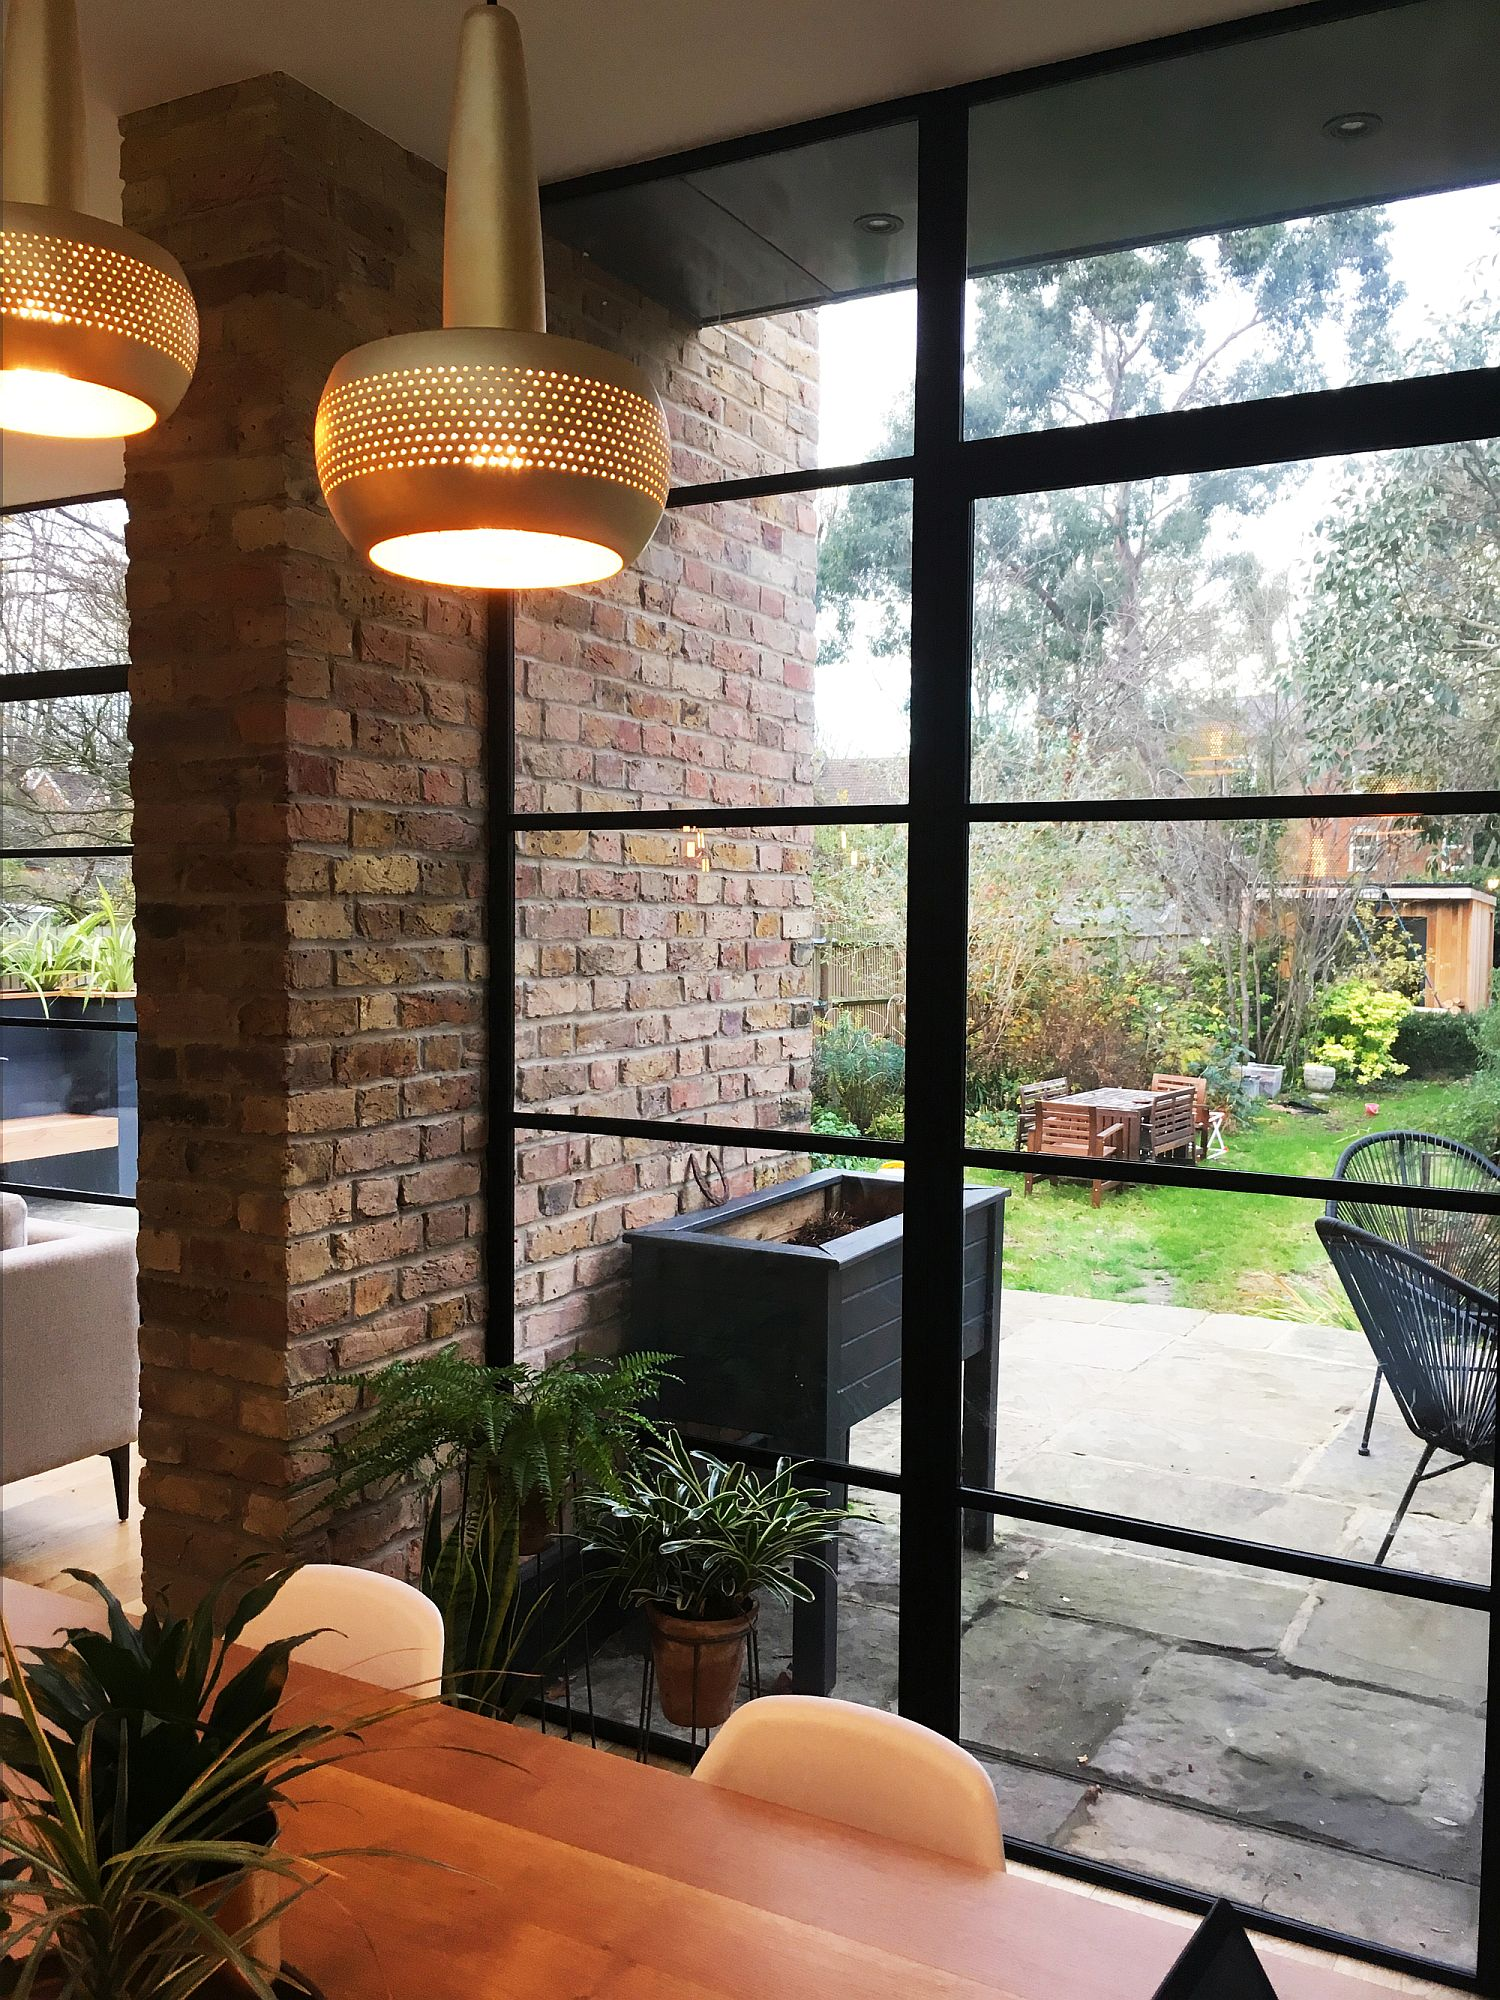 Brick walls coupled with framed glass windows inside the house